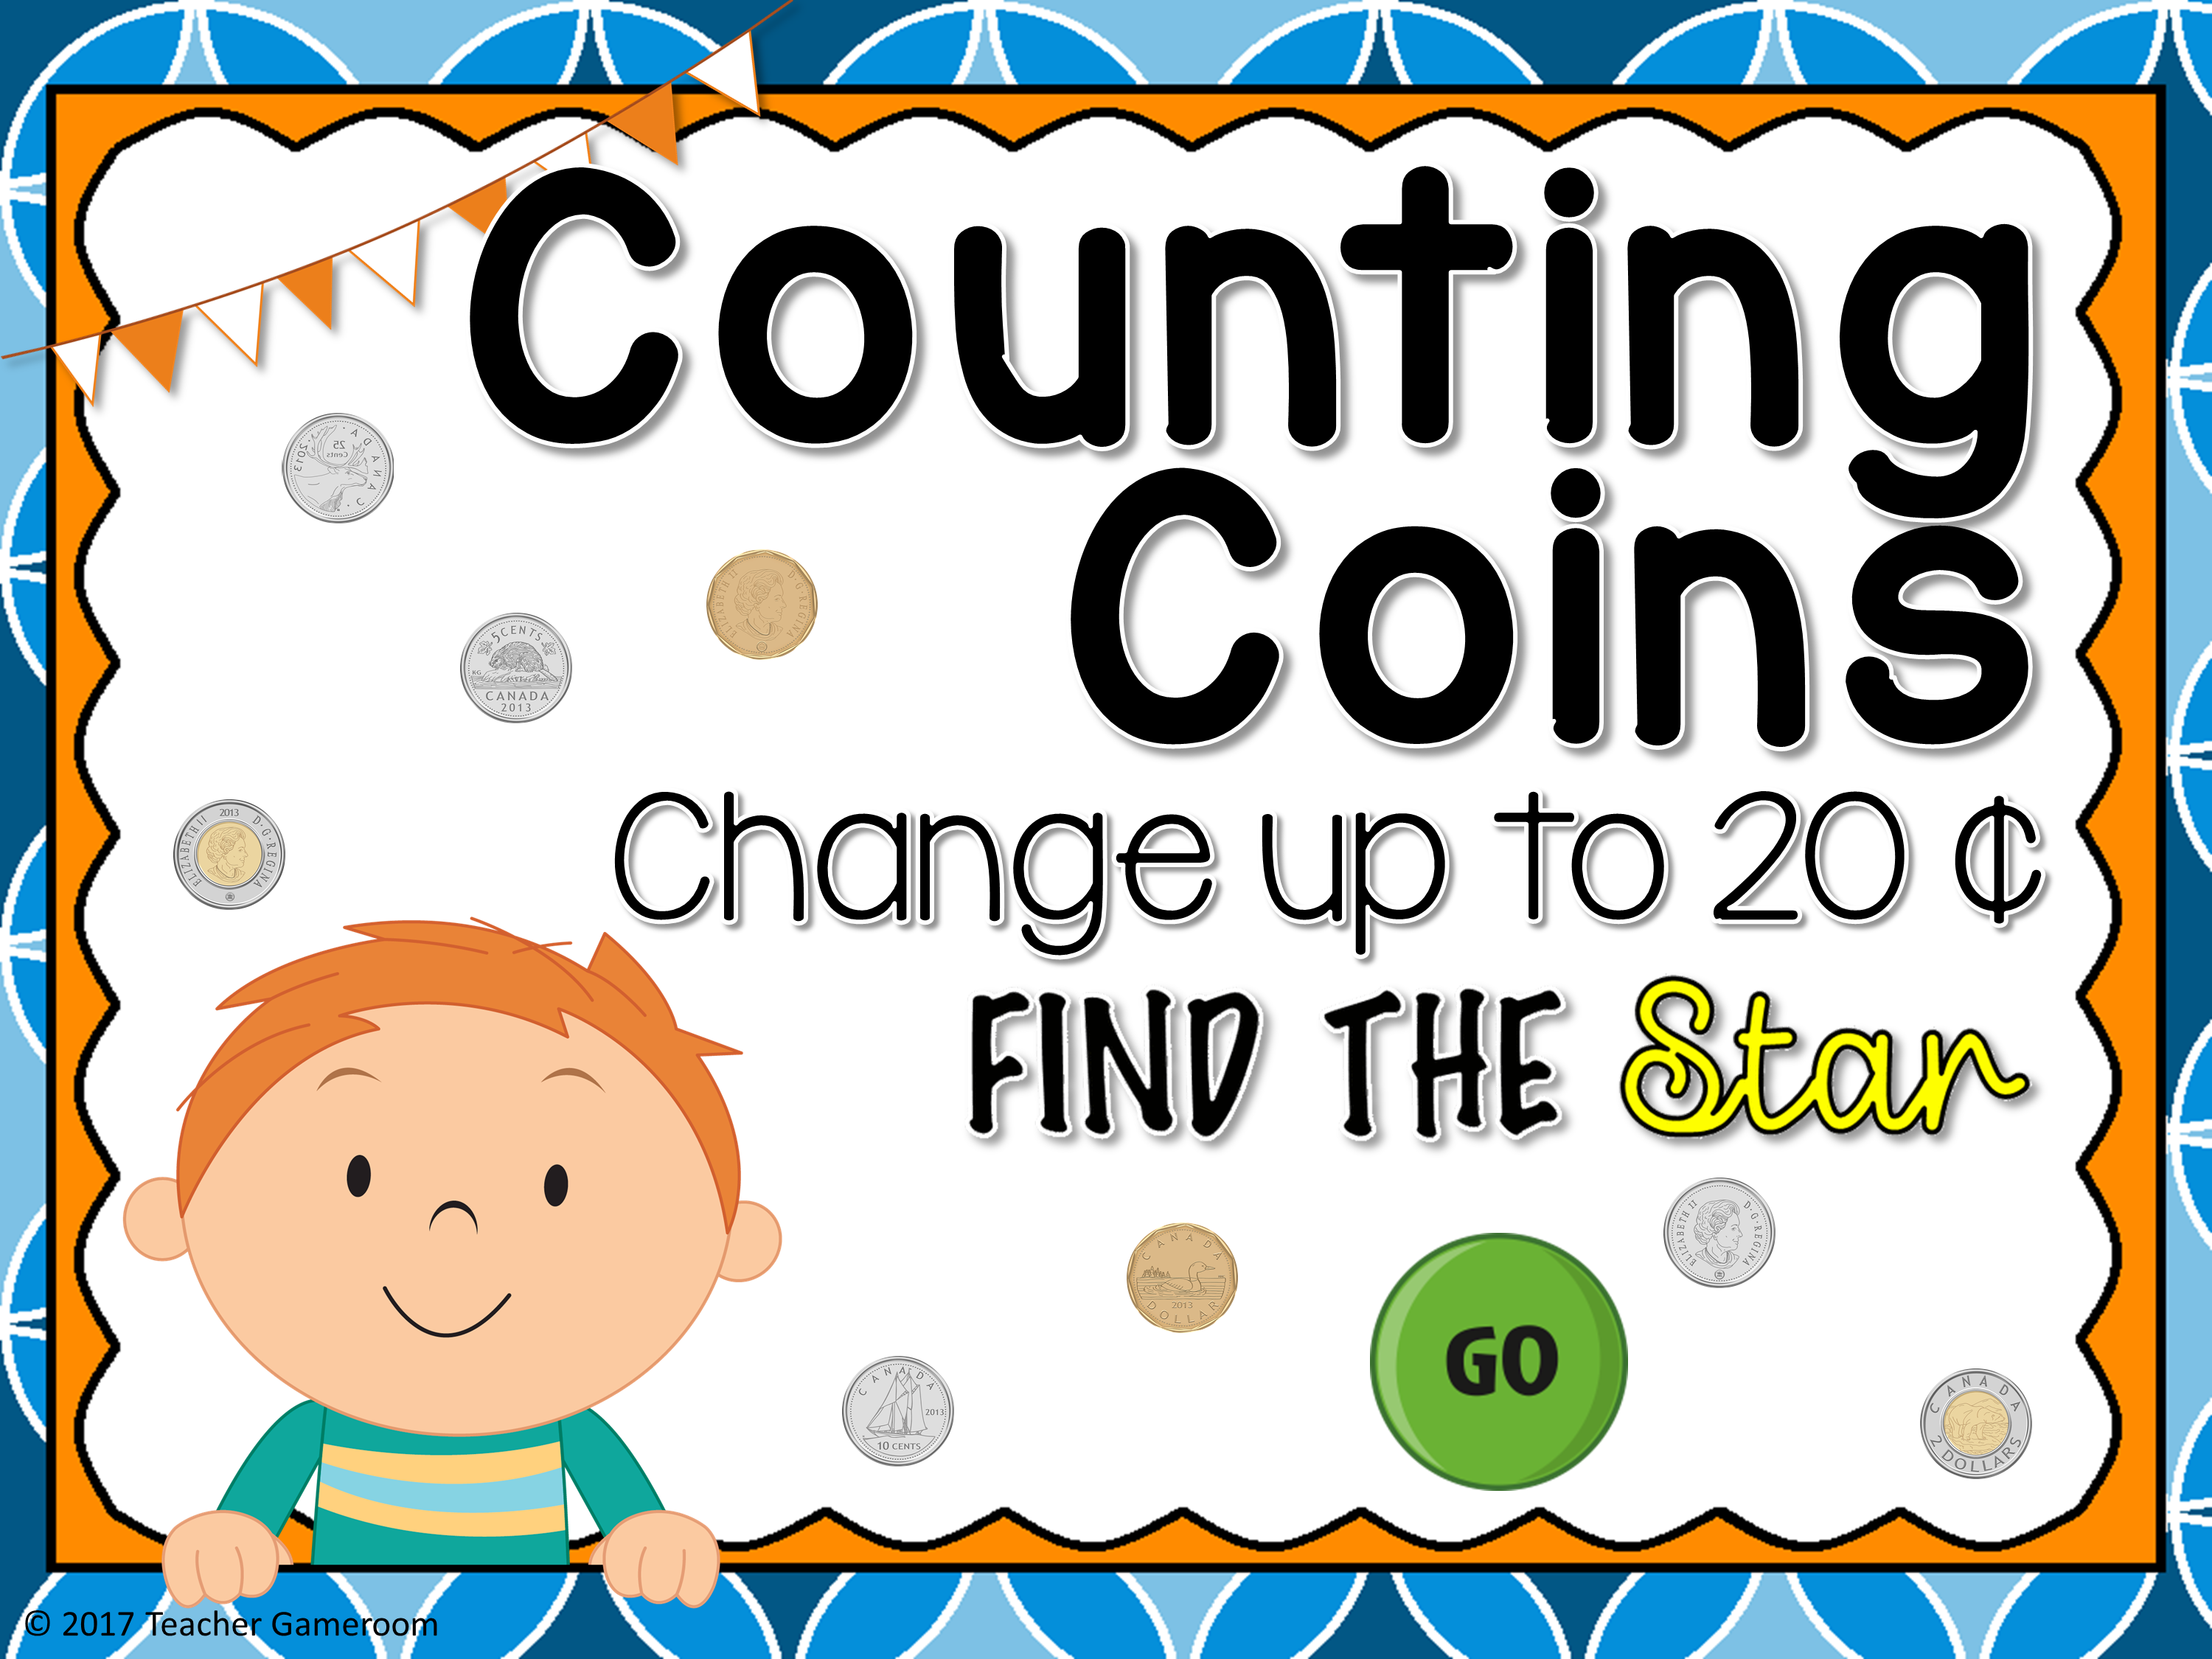 Counting Canadian Coins to 20 Cents Find the Star Game